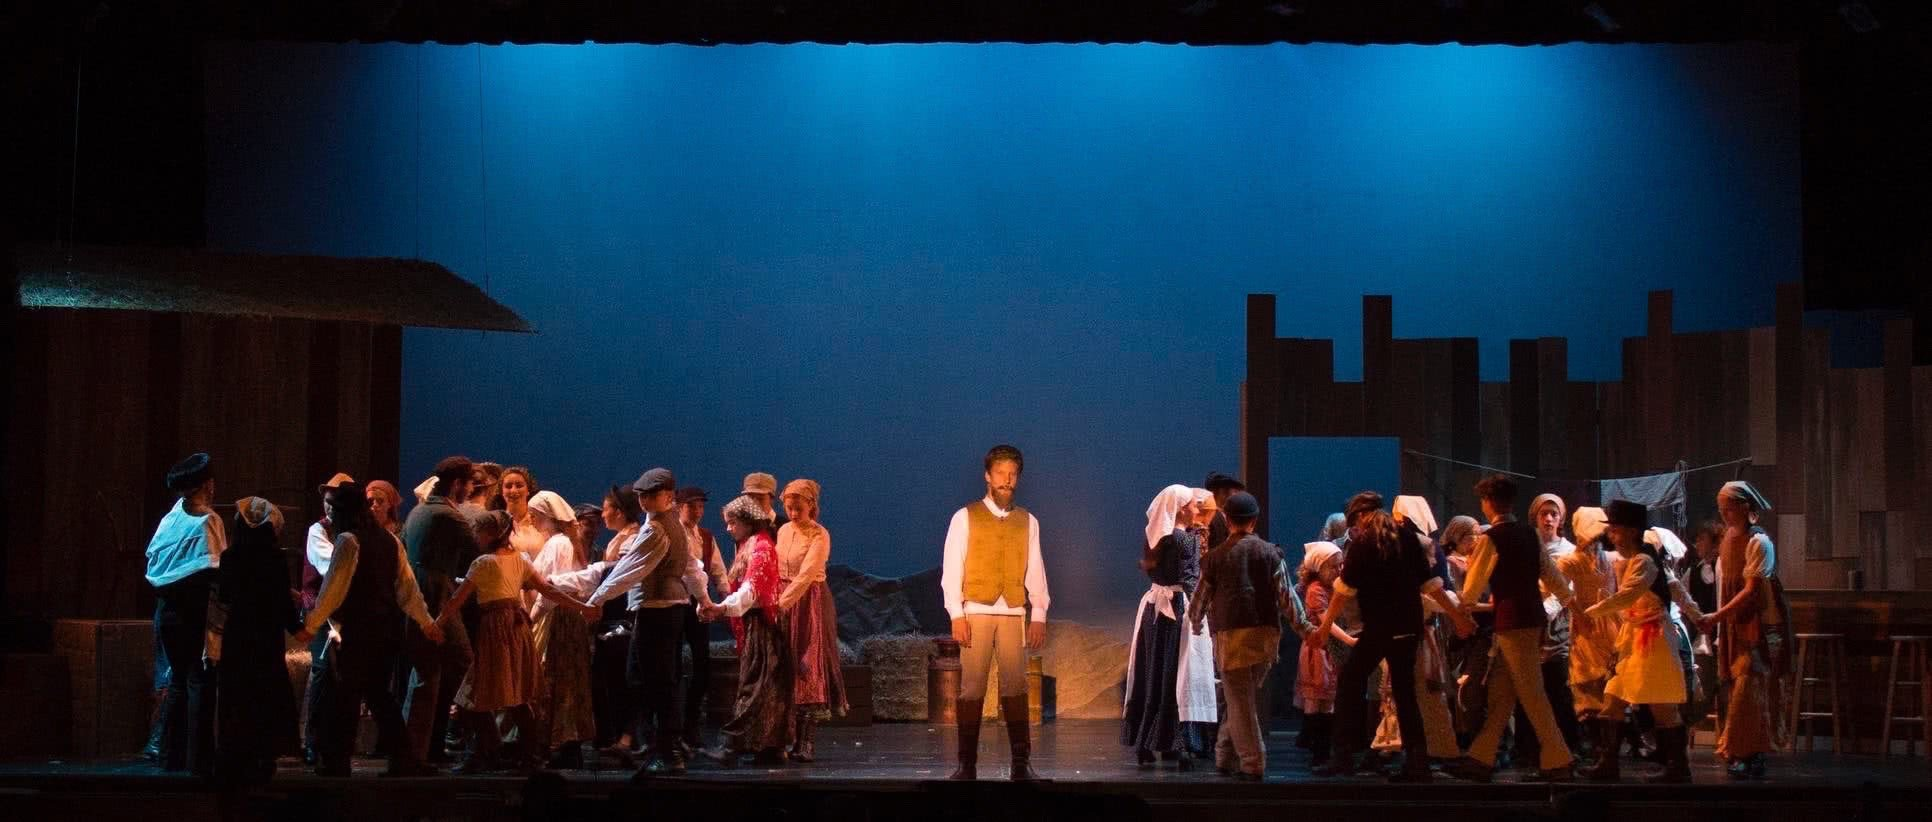 Tomorrow Youth Rep Banner image, from Fiddler on the Roof, 2016